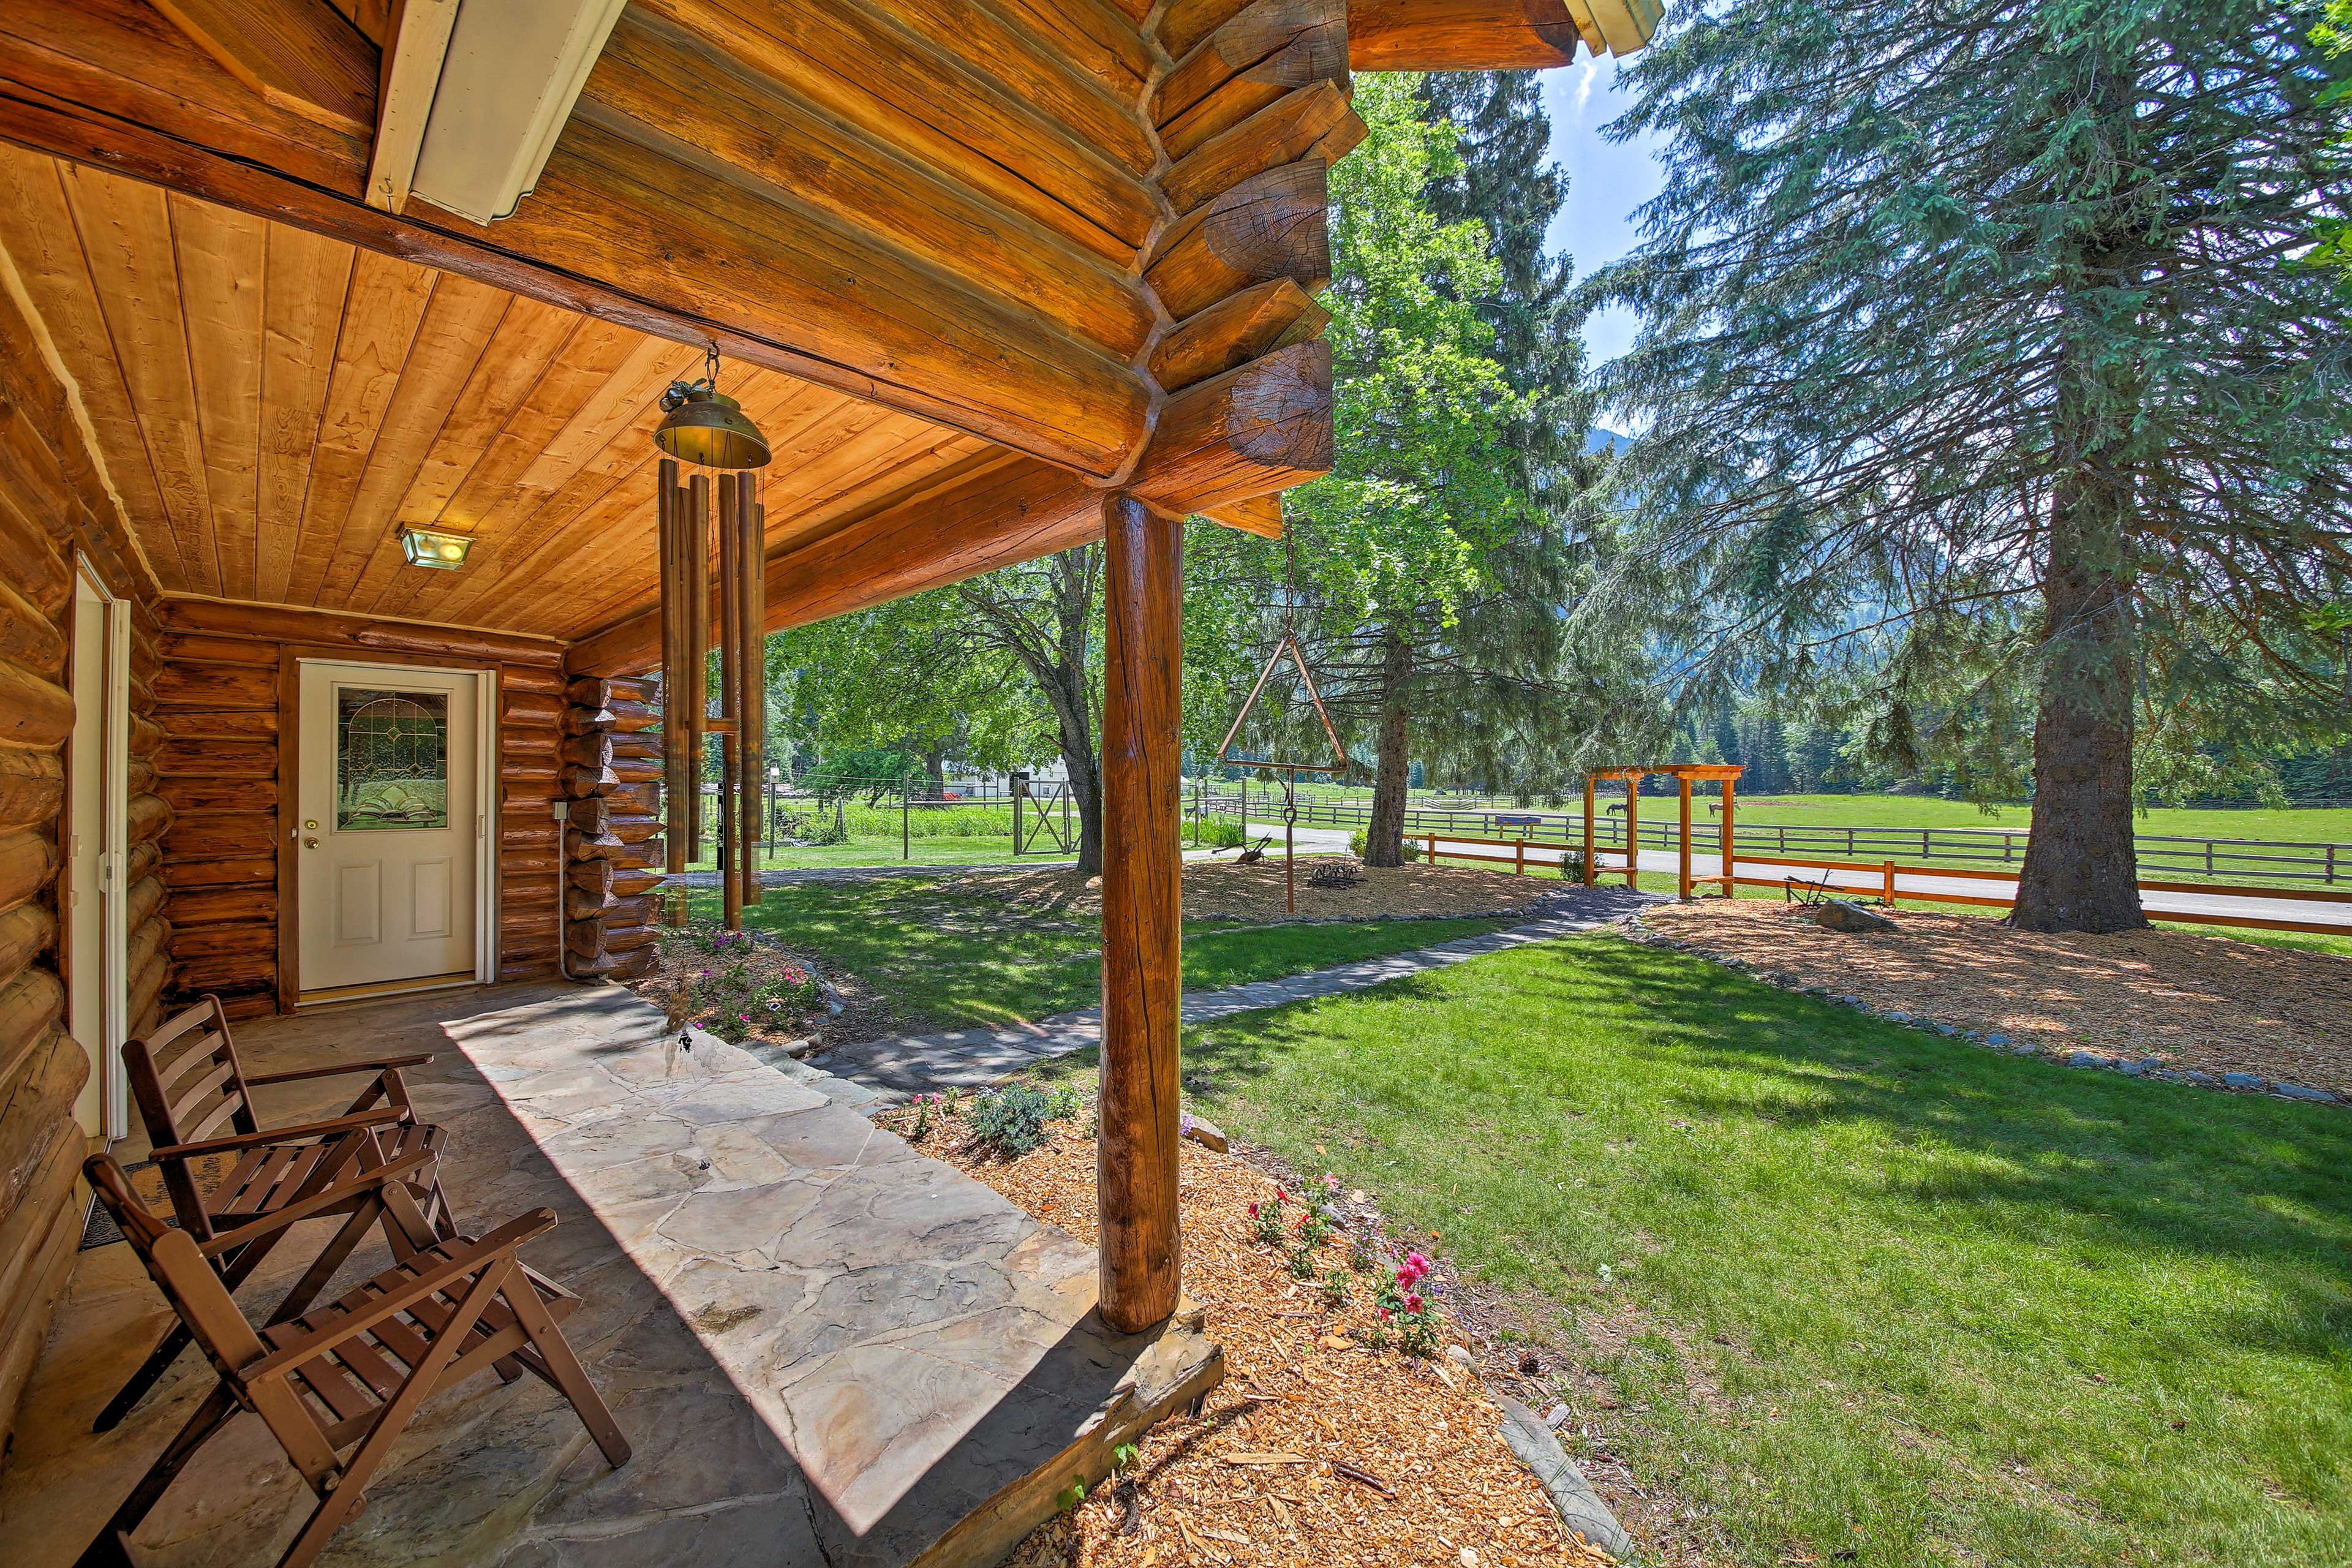 Grab a seat to overlook the surroundings from the front porch.